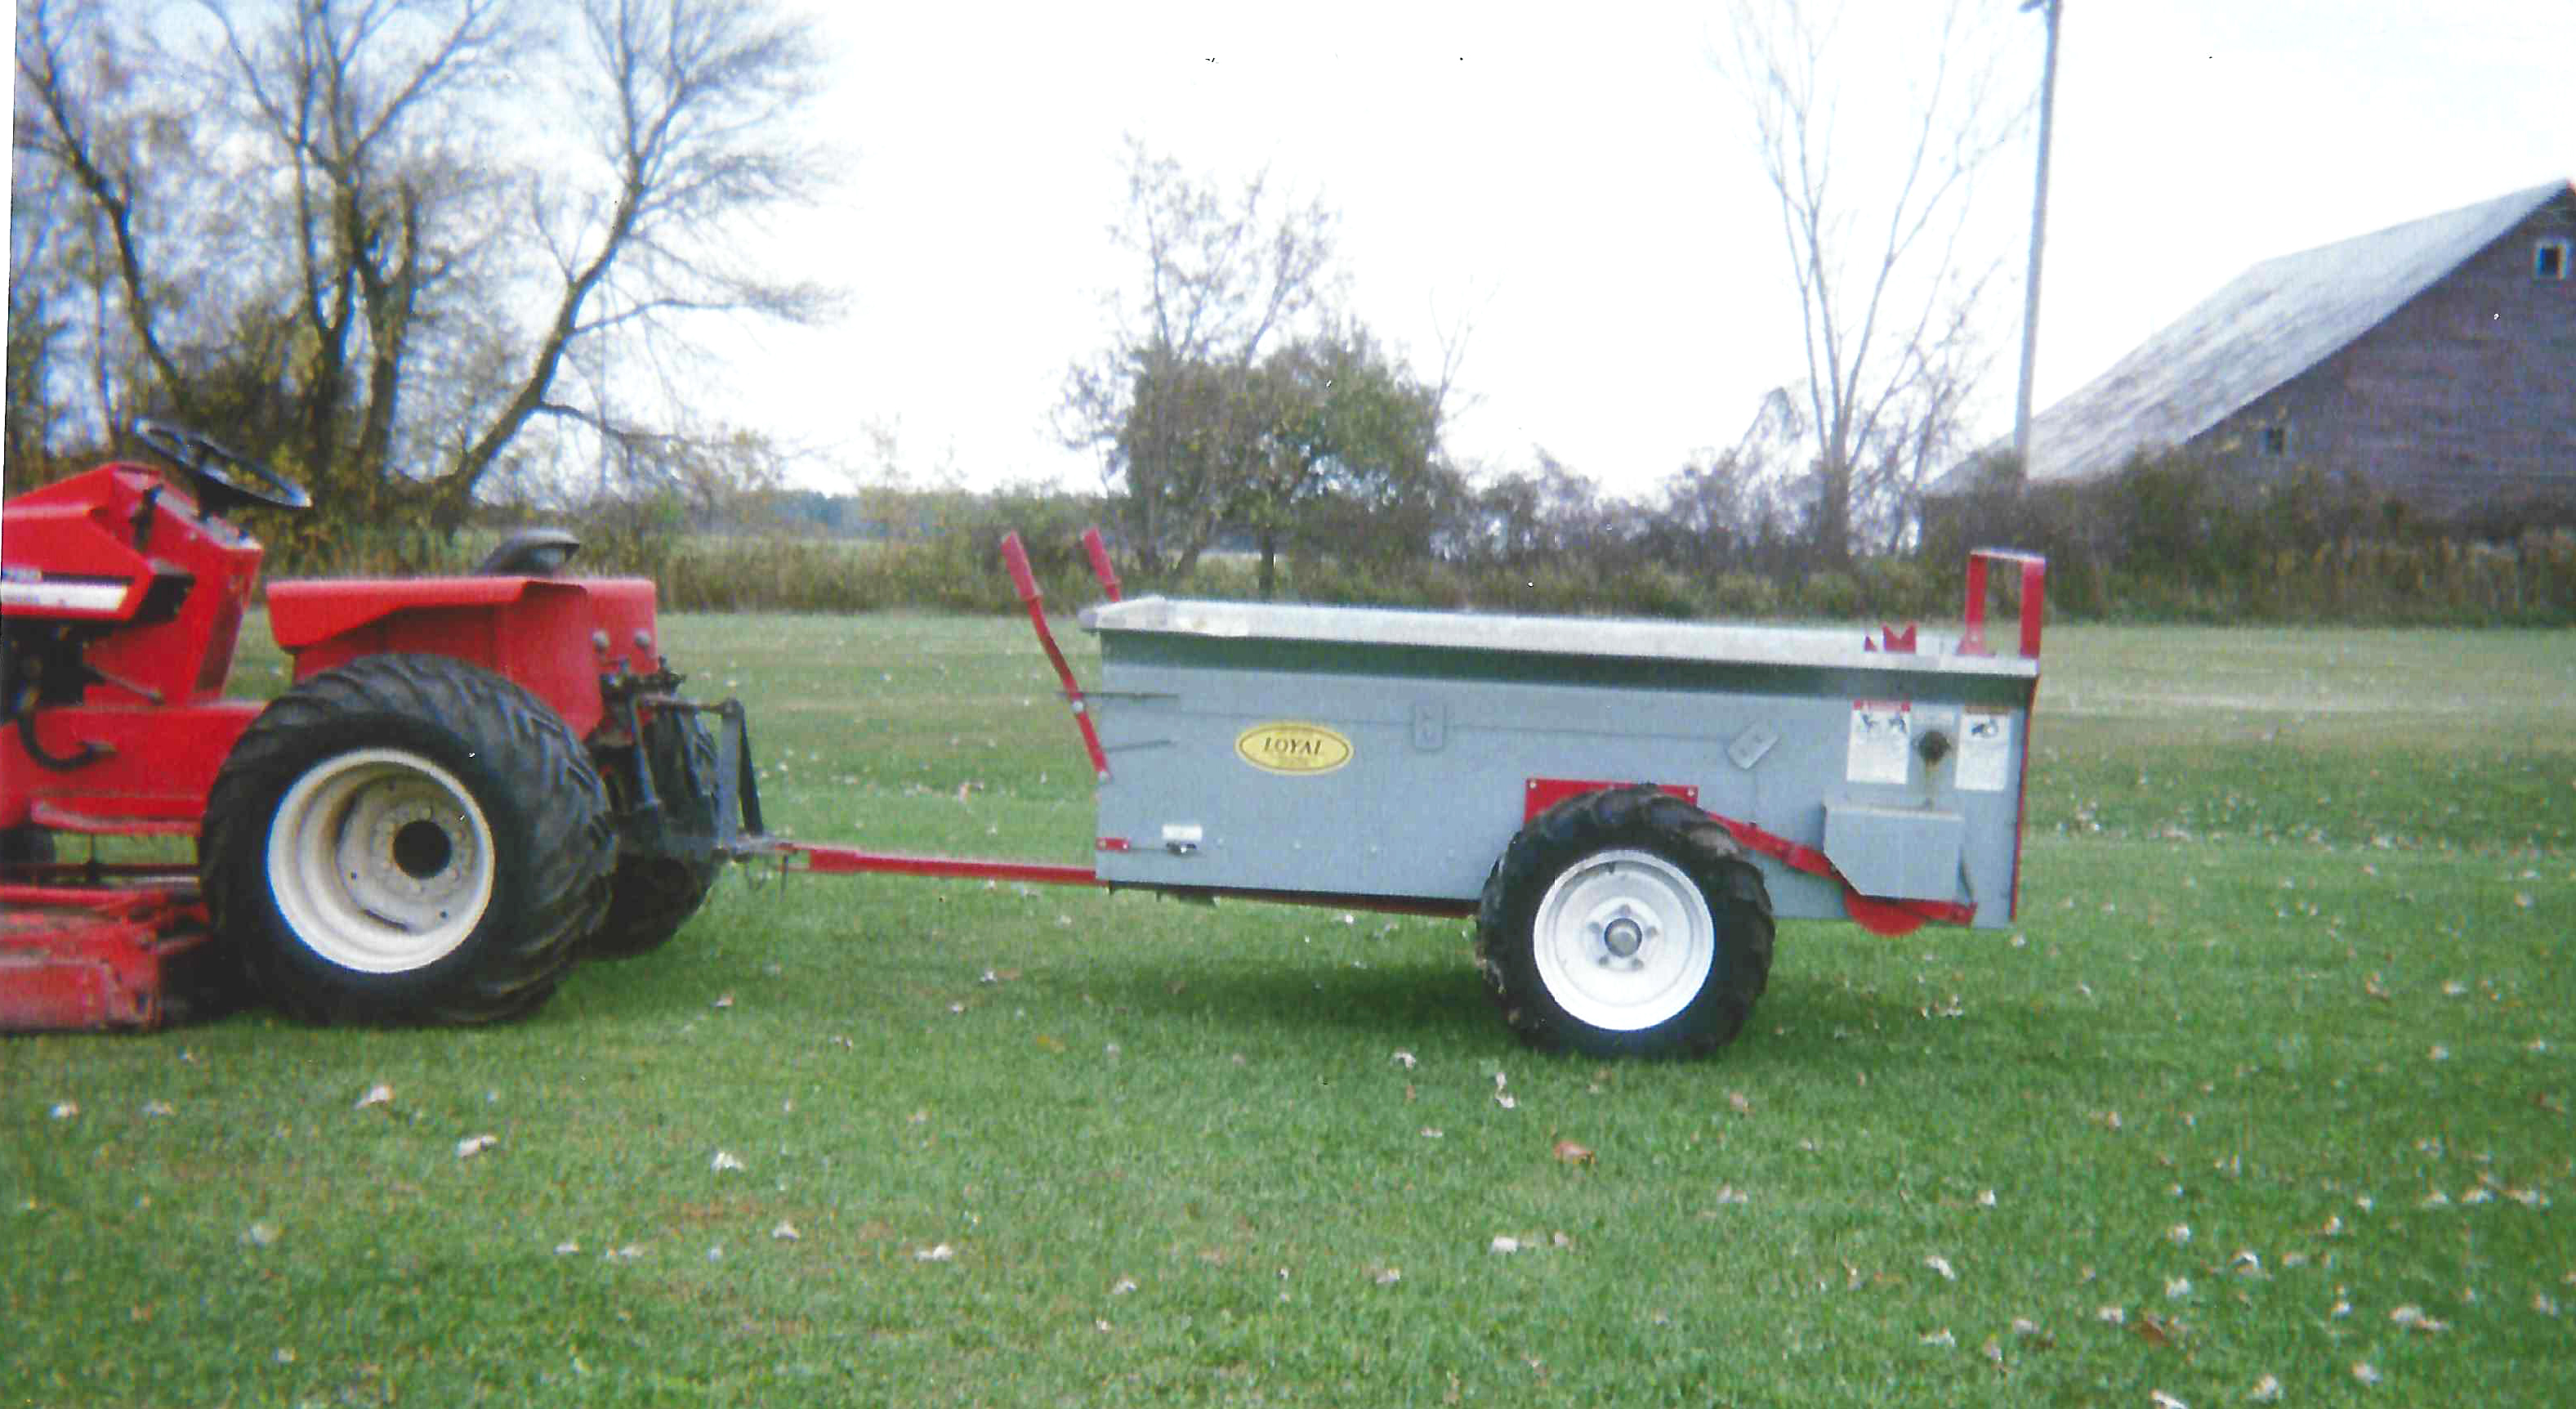 2015 GROUND Drive Spreader brand new - never used new tires galvanized metal was 2250 buy now